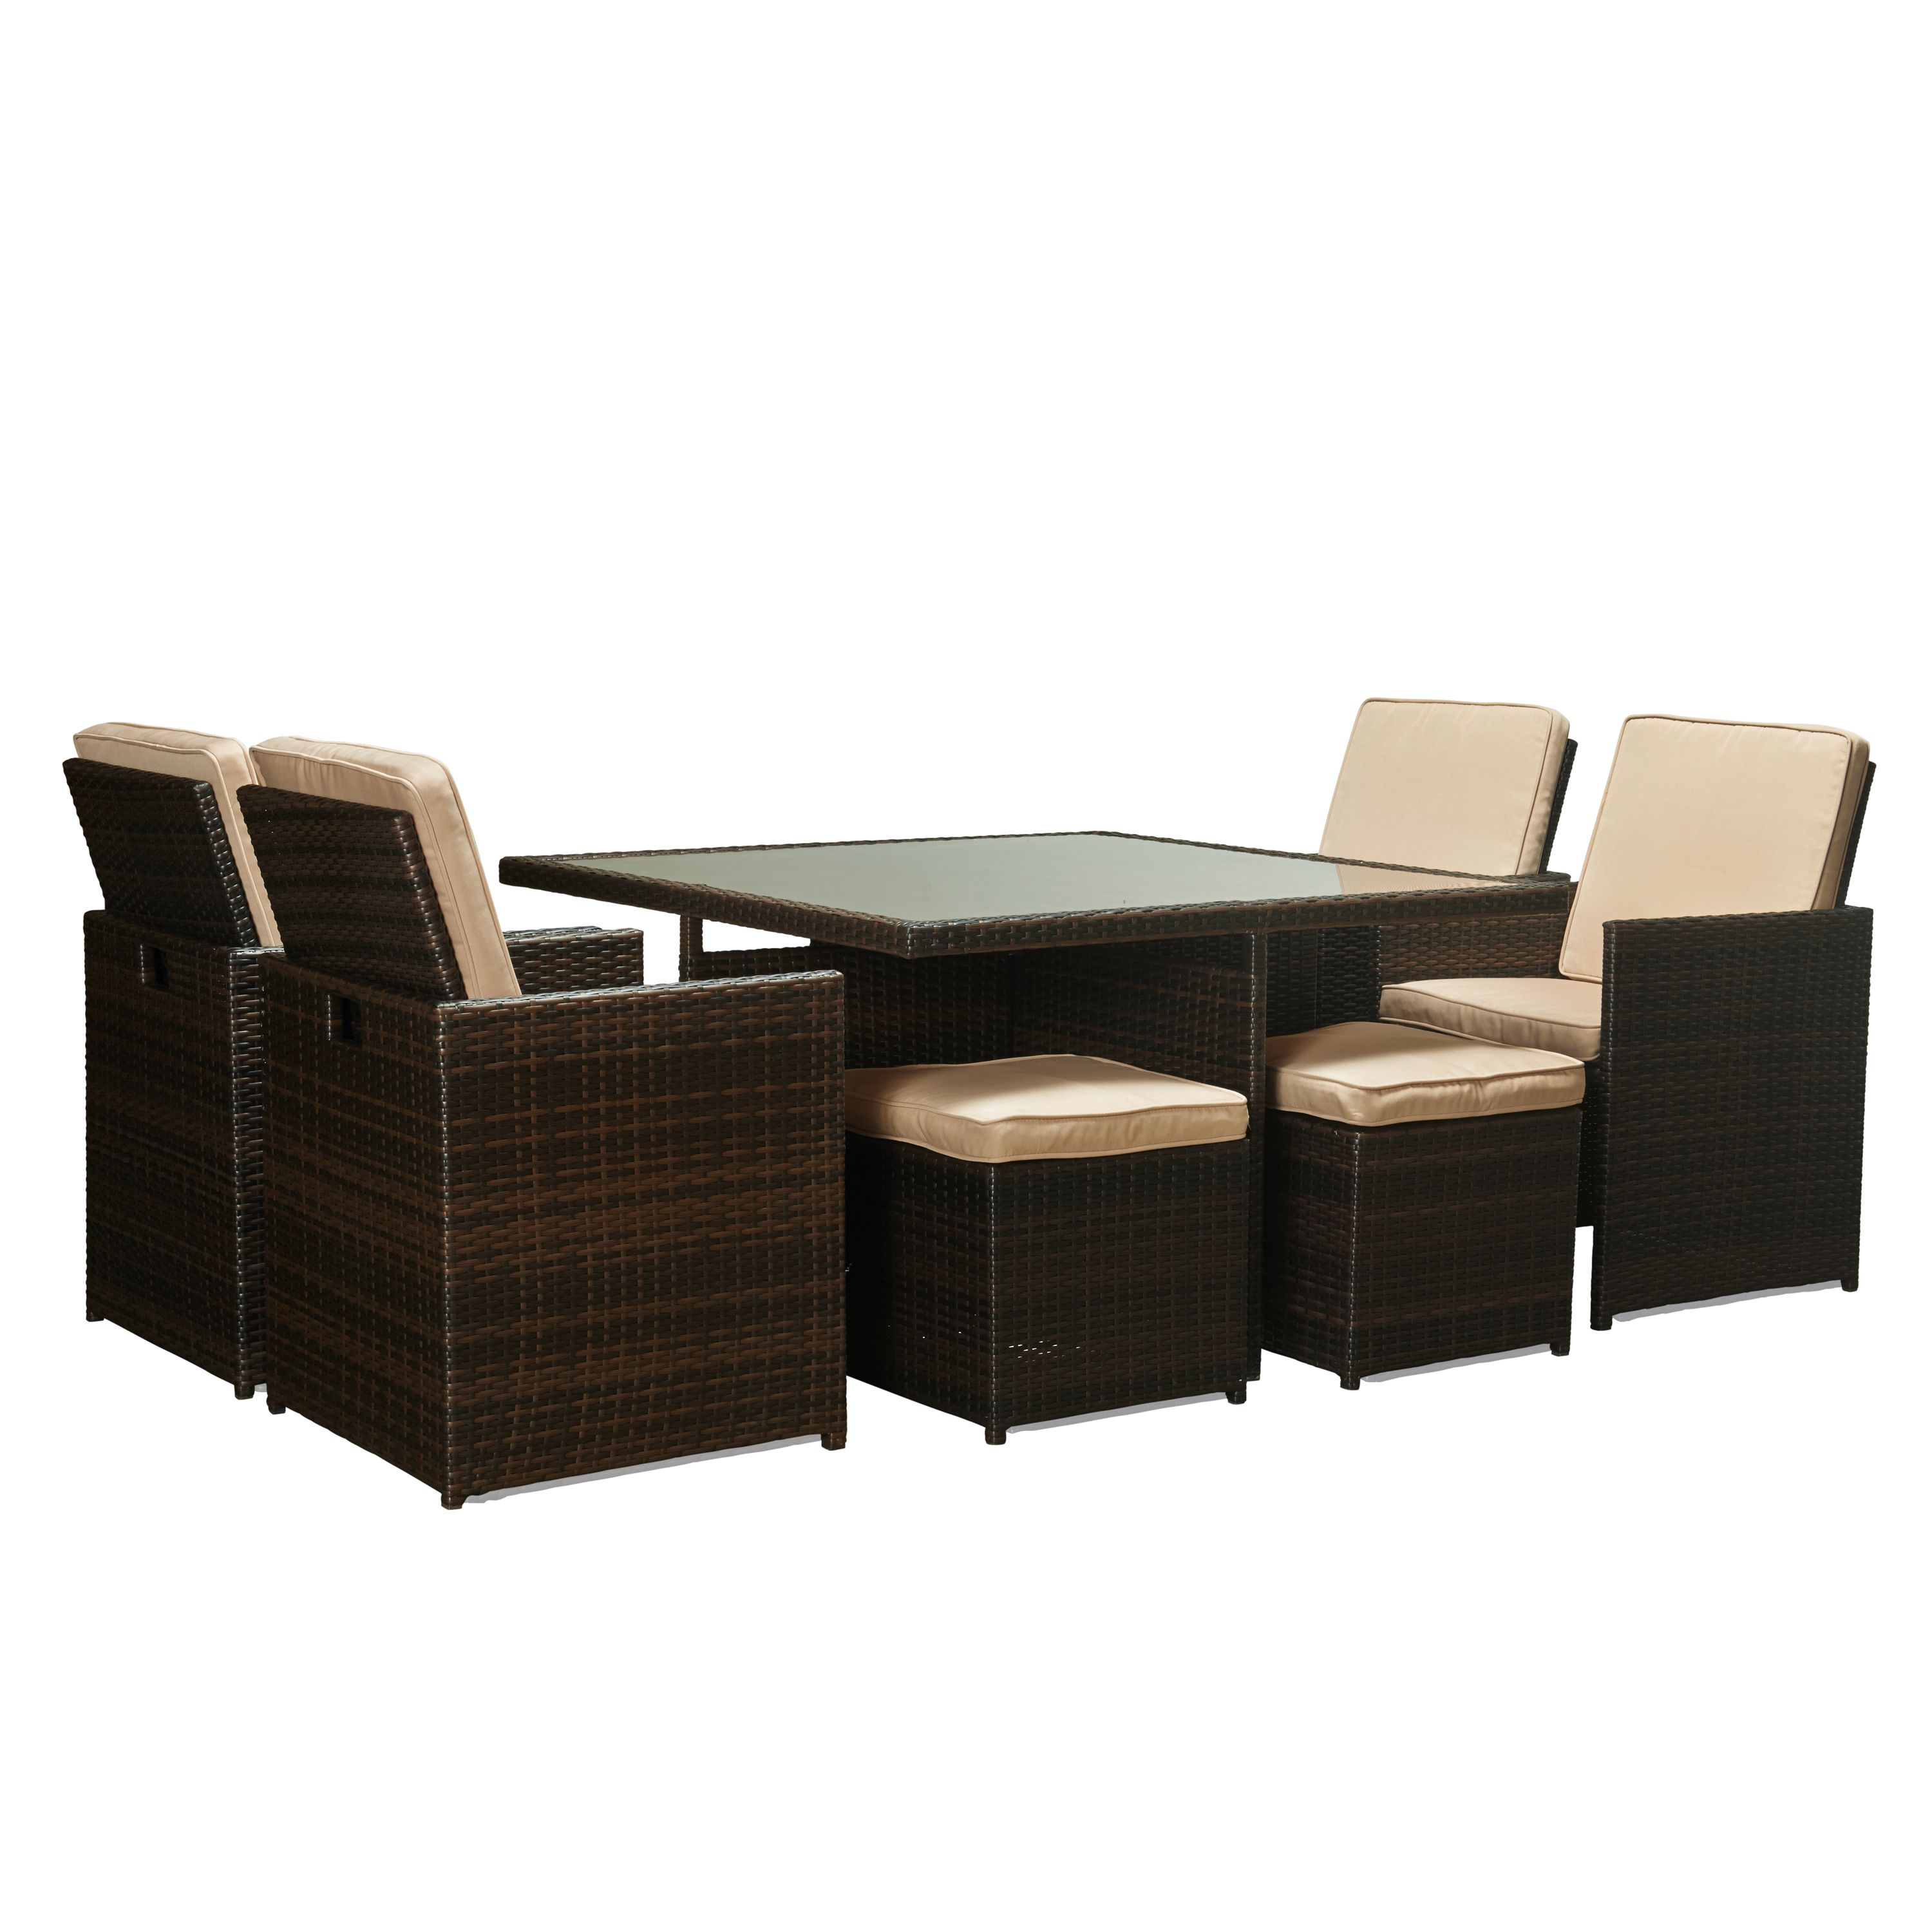 The aluminum wicker dining set includes four chairs four foot